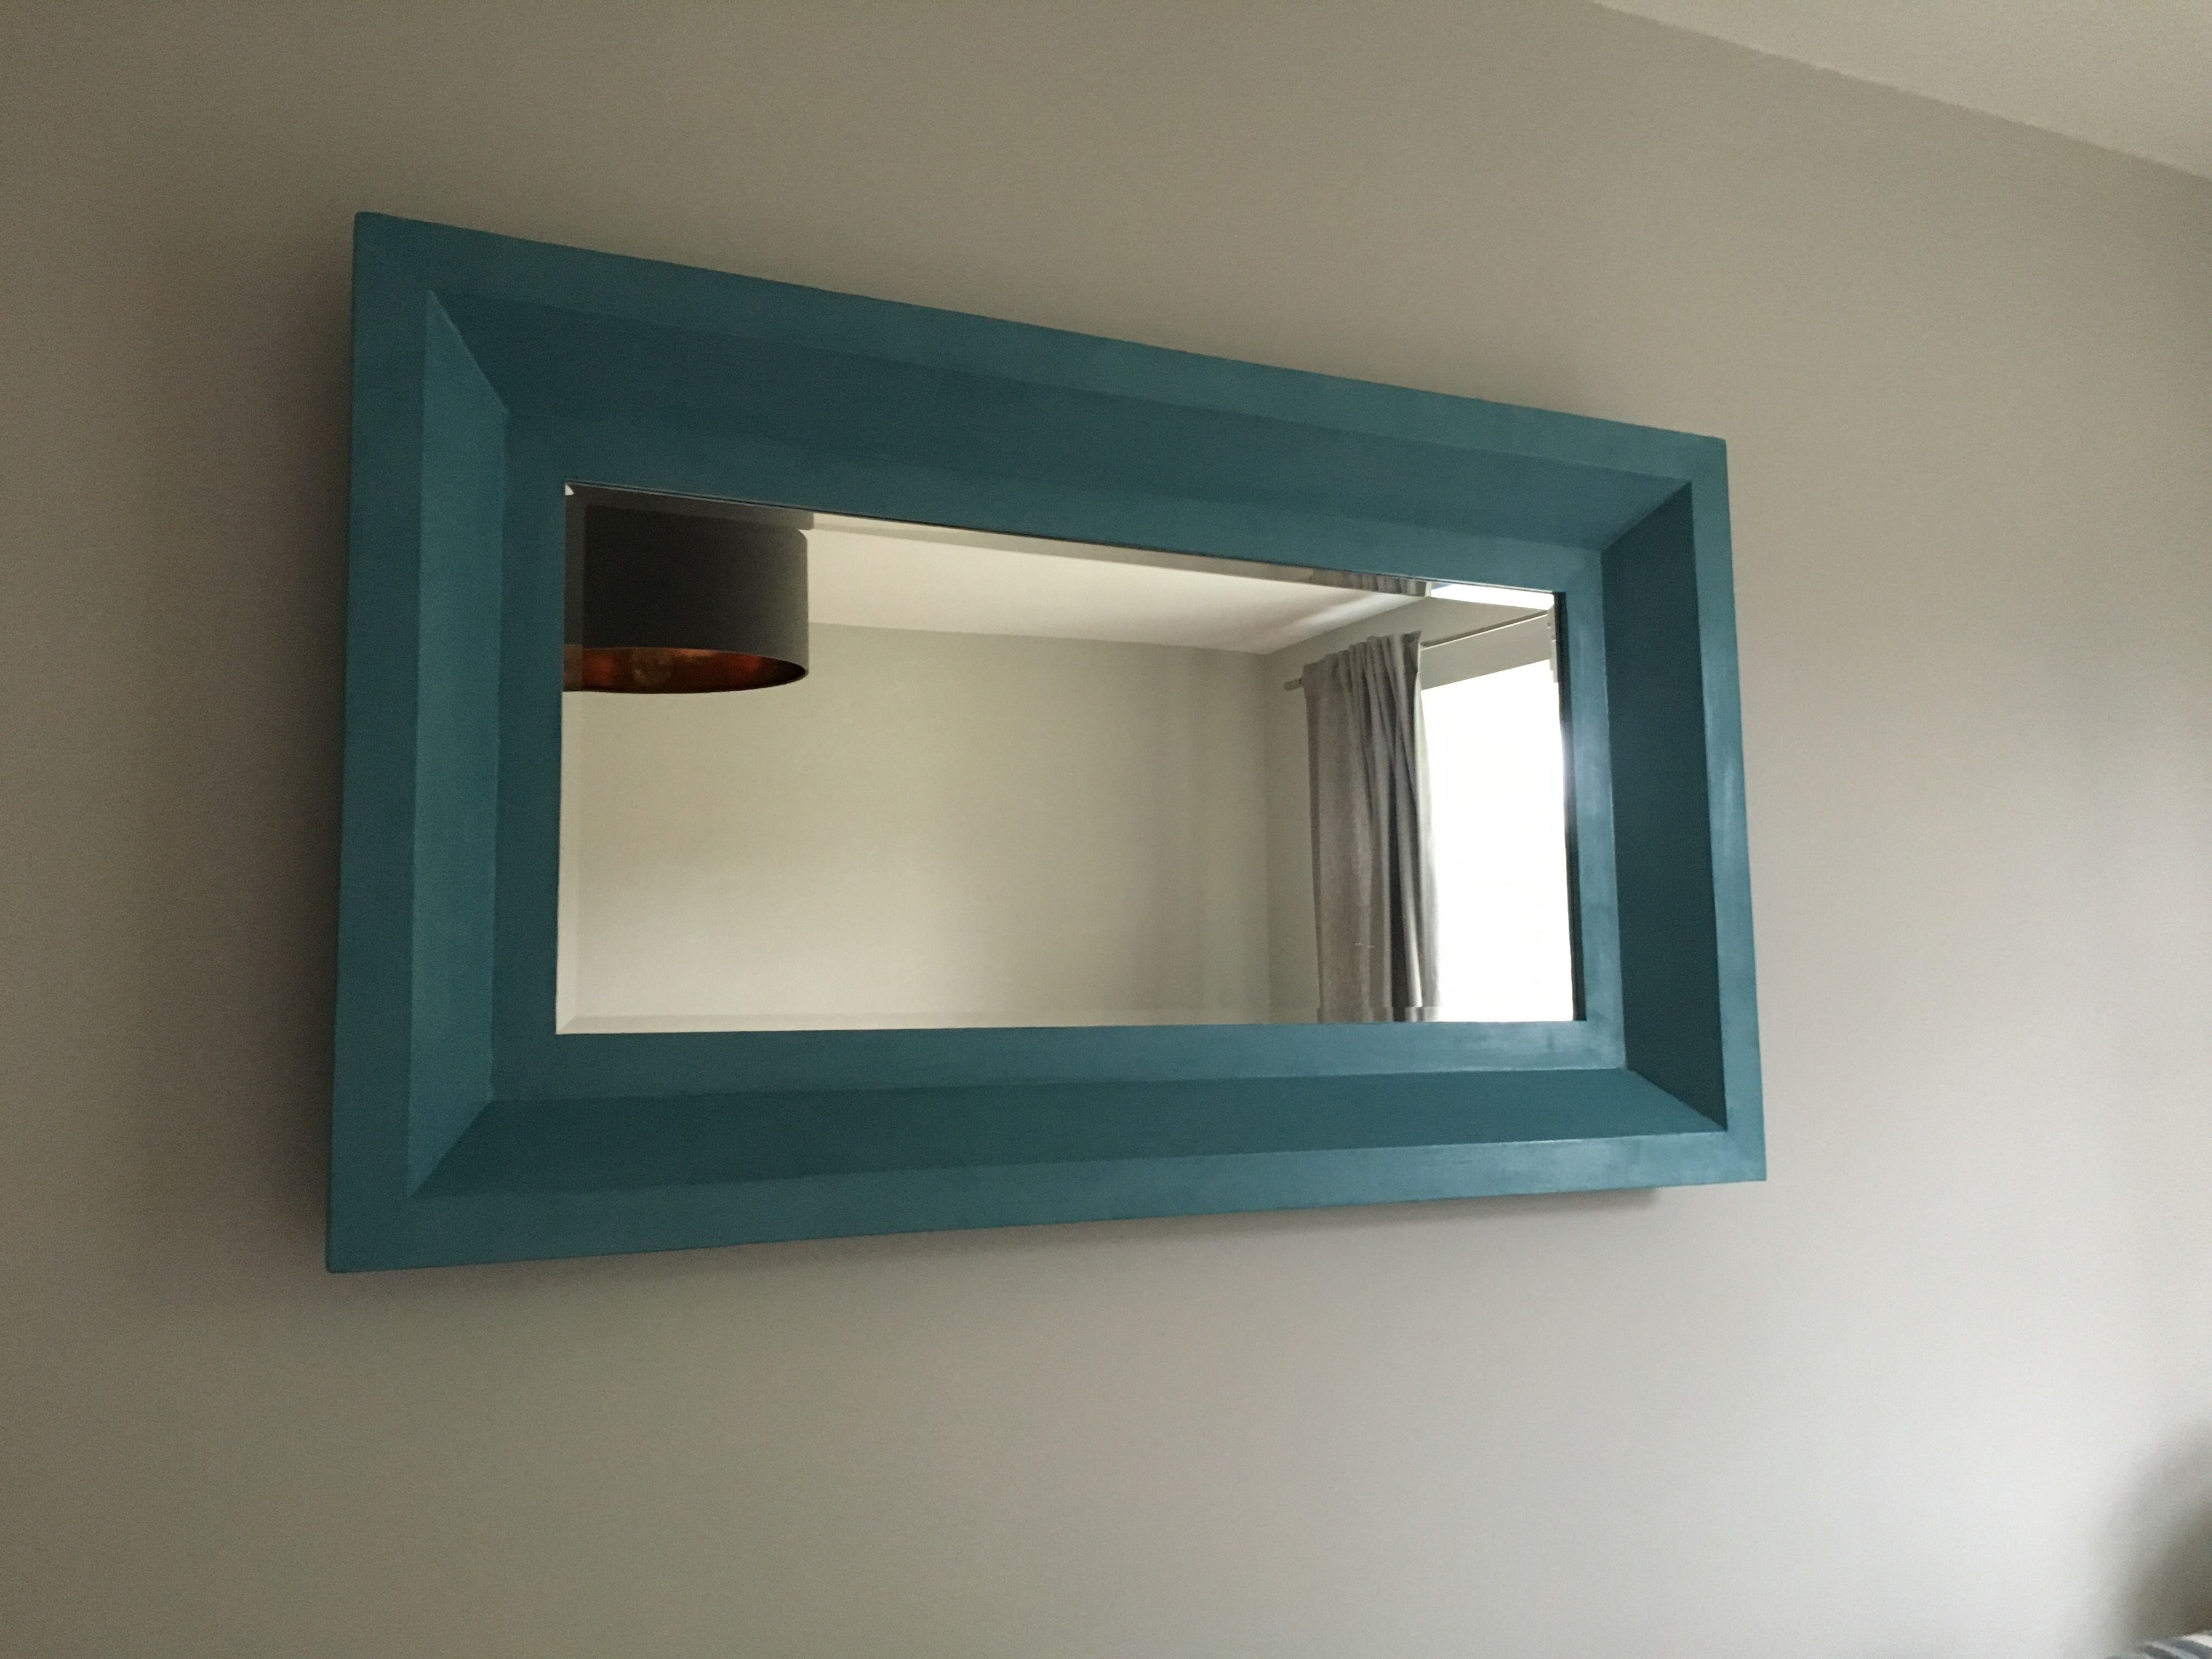 Mirror Upscale With Rust Oleum Belgrave Blue Chalk Paint